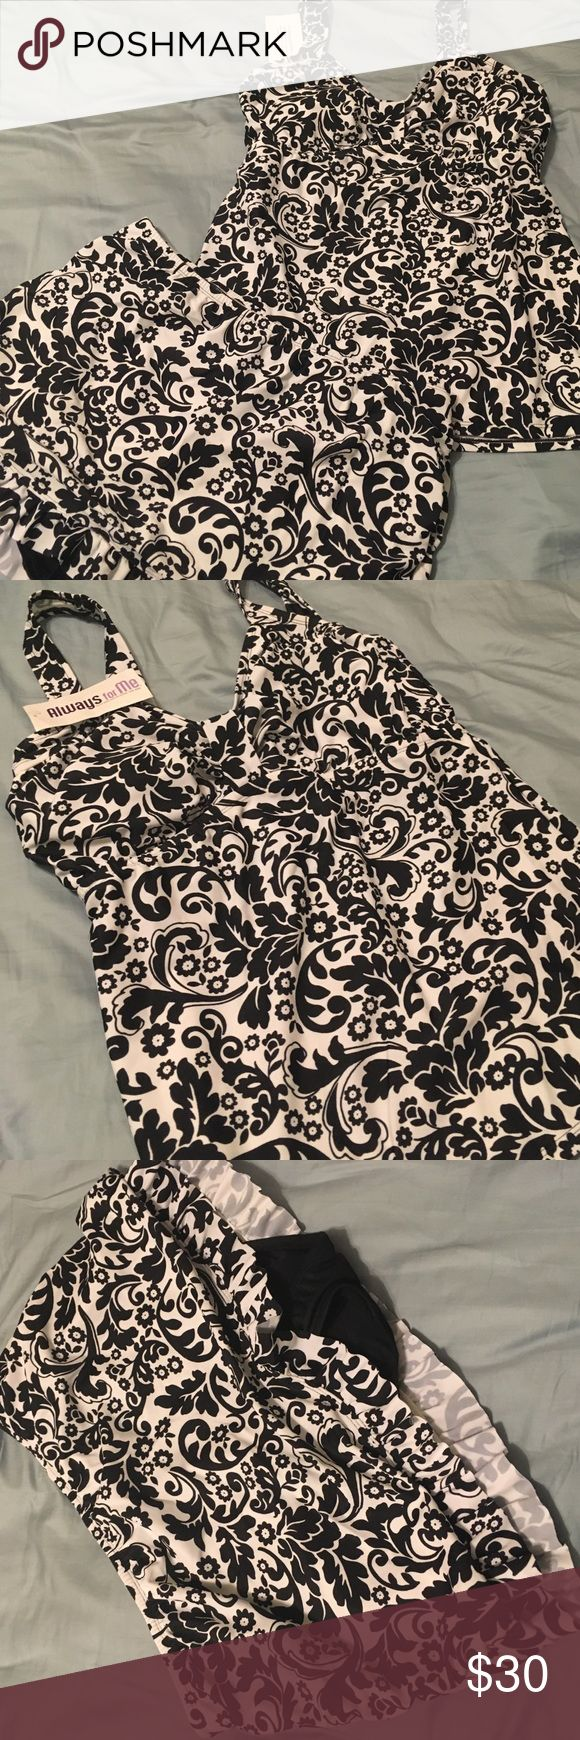 Always For Me Tankini! Chic Print! Ready for the summer? This lovely two piece black and white floral print swim suit is the ticket! The suit is new, never worn. The bottom is a swim skirt. Always For Me Swim